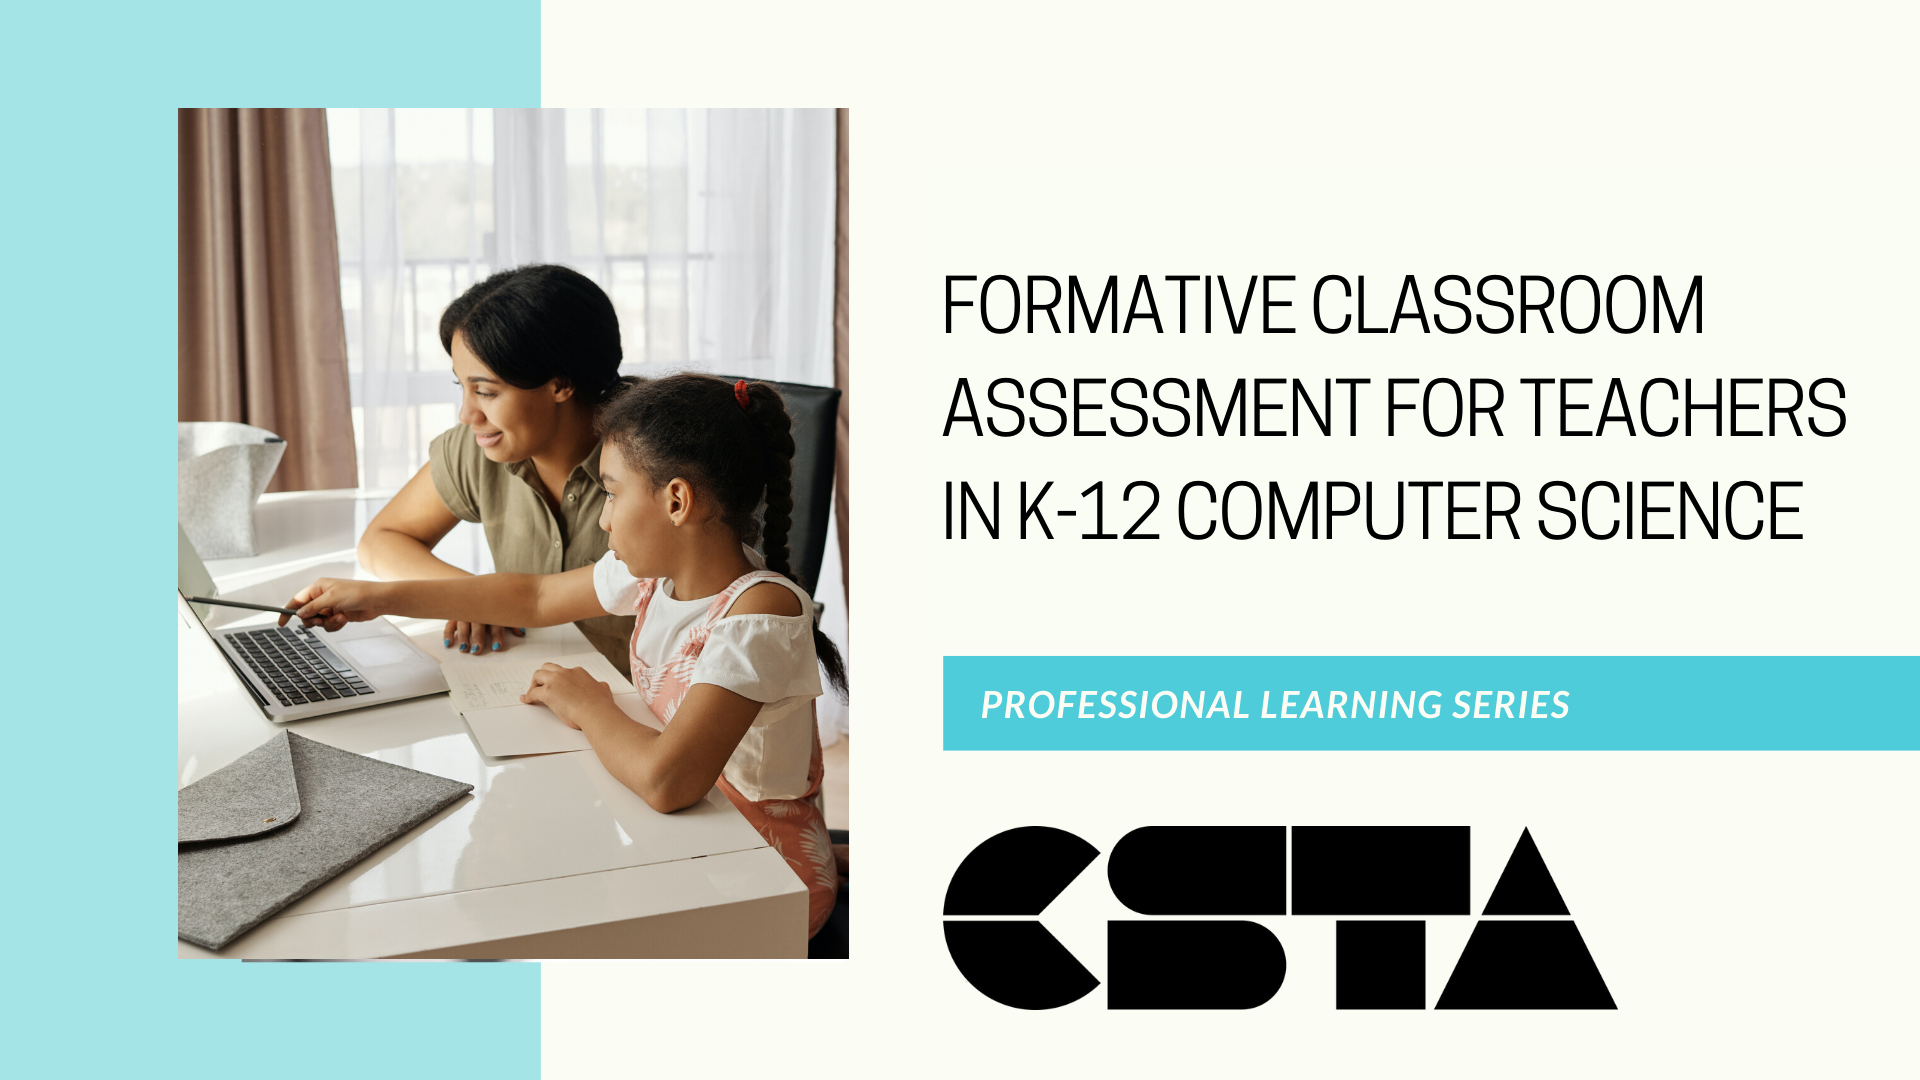 Formative Classroom Assessment for Teachers - Professional Learning Series